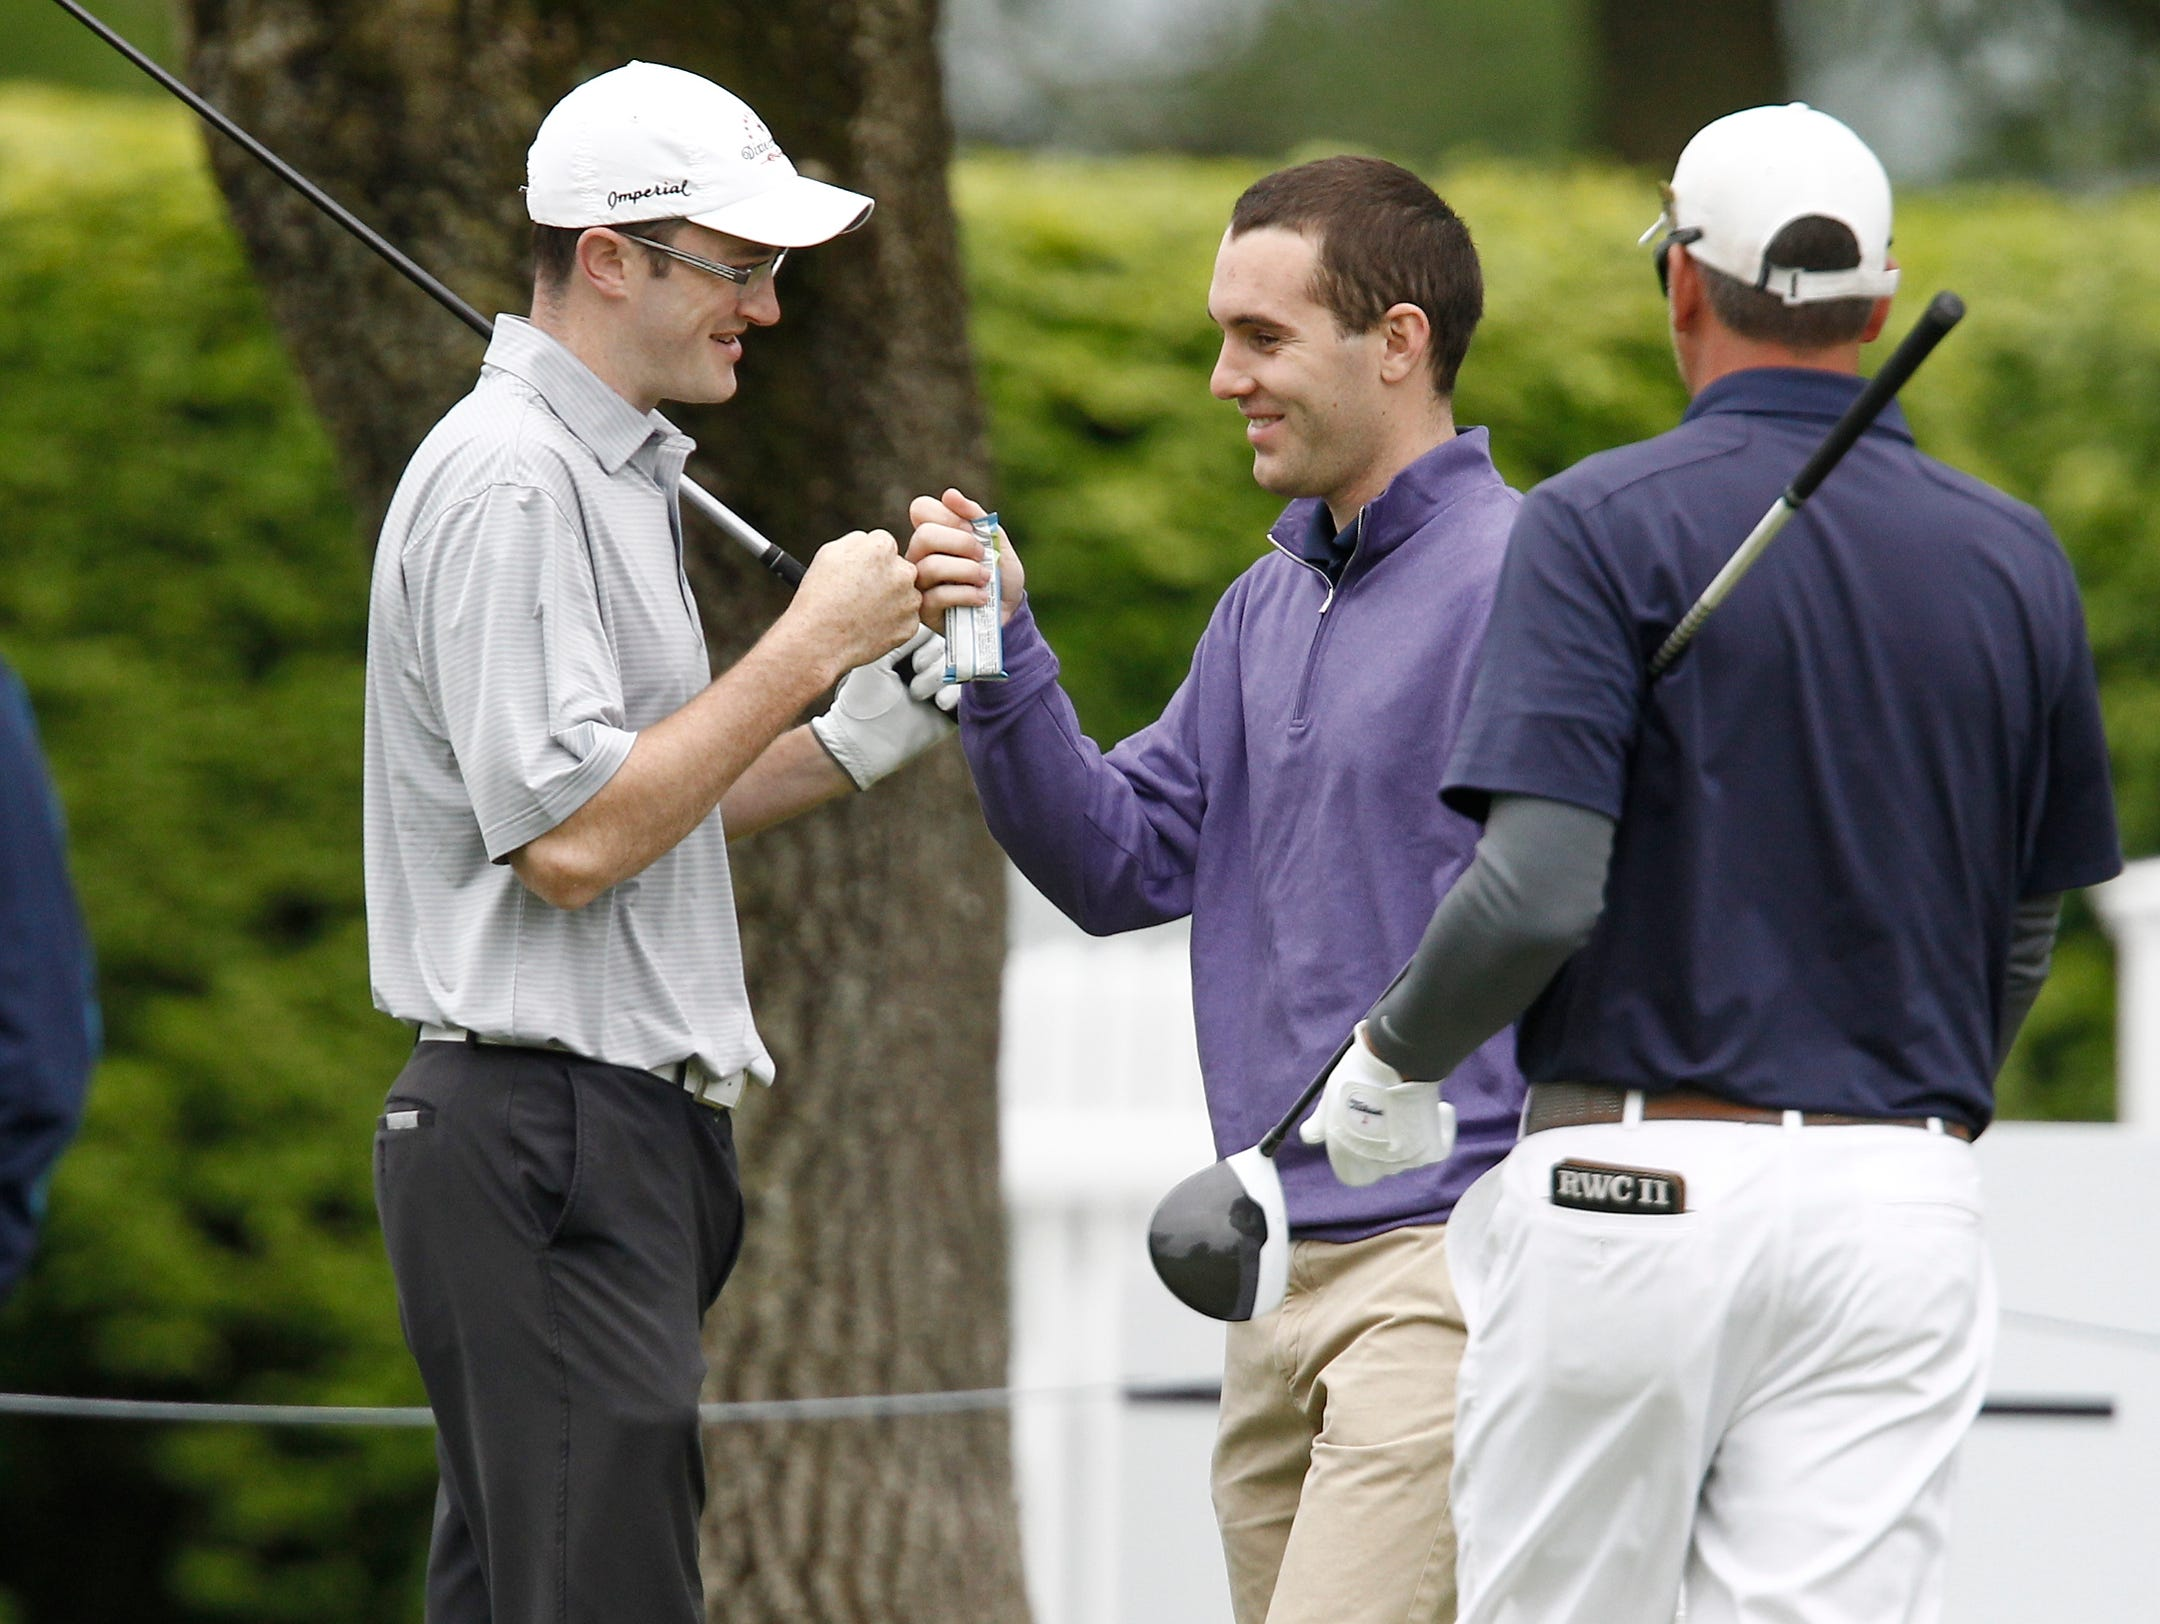 Luke Freehan, left, and Max Christiana fist bump prior to teeing off on the first hole during day 2 of the 2016 U. S. Amateur Four-Ball Championship at Winged Foot Golf Club in Mamaroneck on Sunday, May 22, 2016.